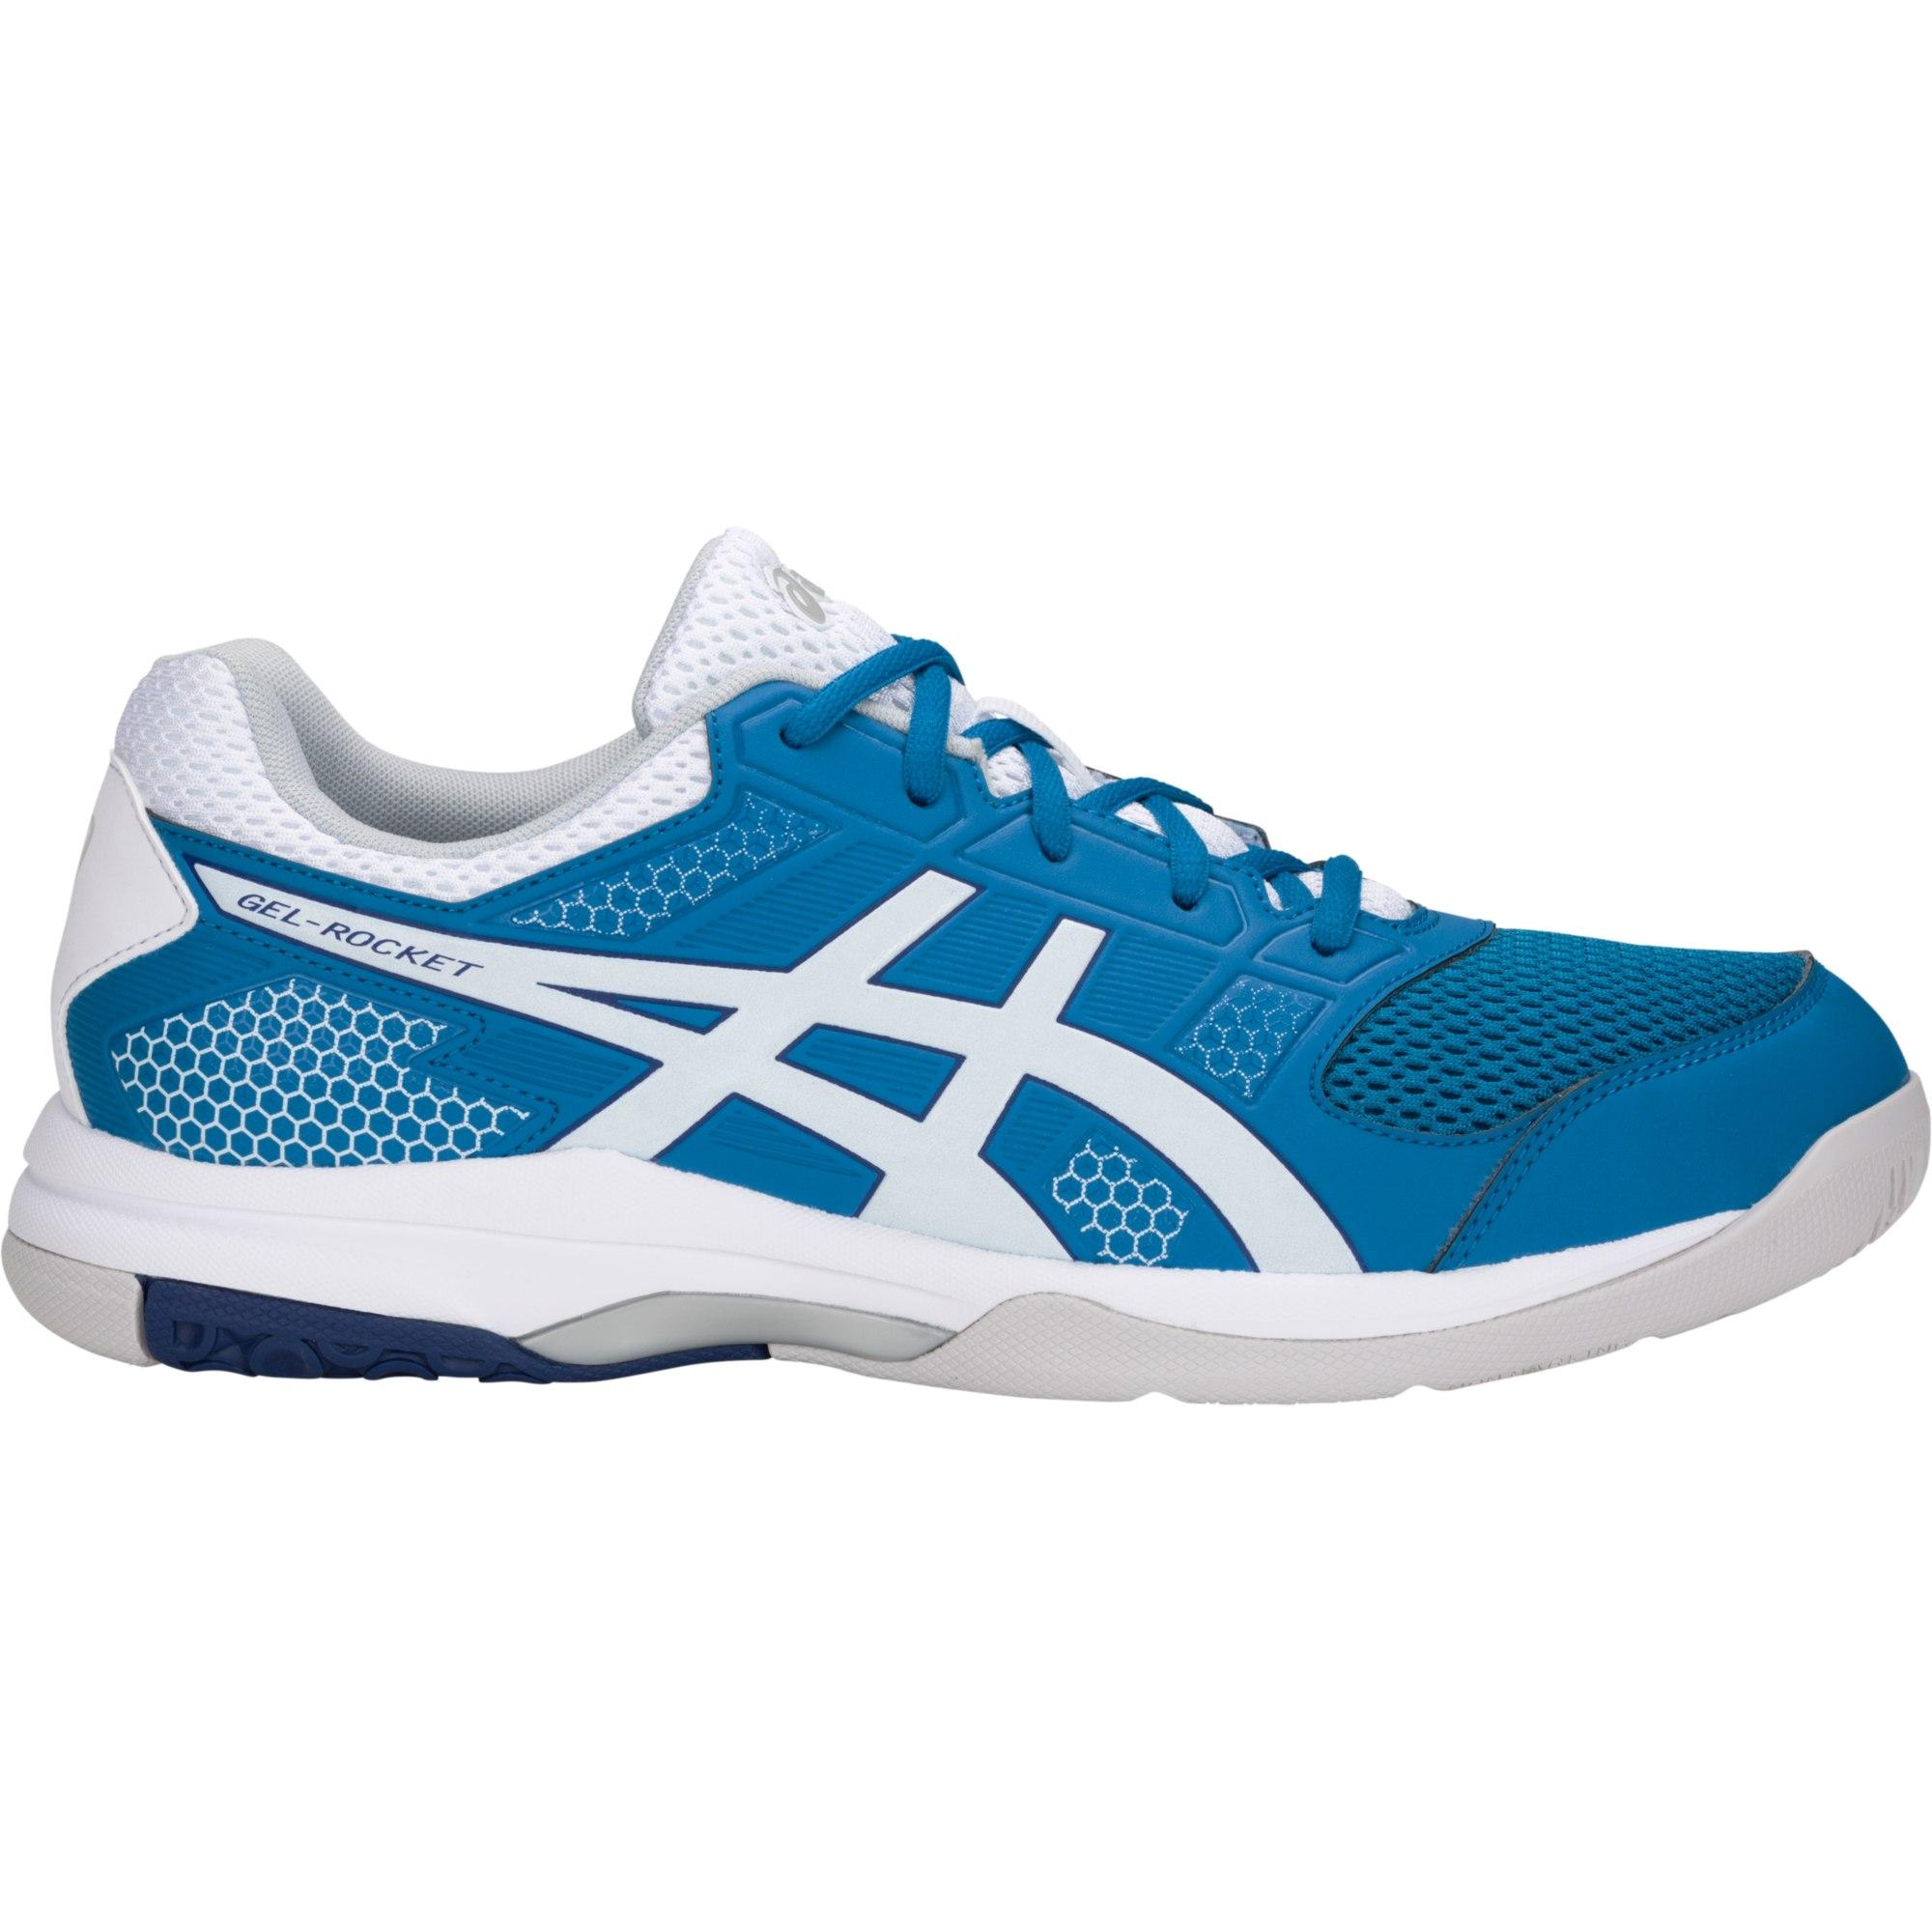 abebc153bbe540 Asics Mens GEL-Rocket 8 Indoor Court Shoes - Race Blue White -  Tennisnuts.com